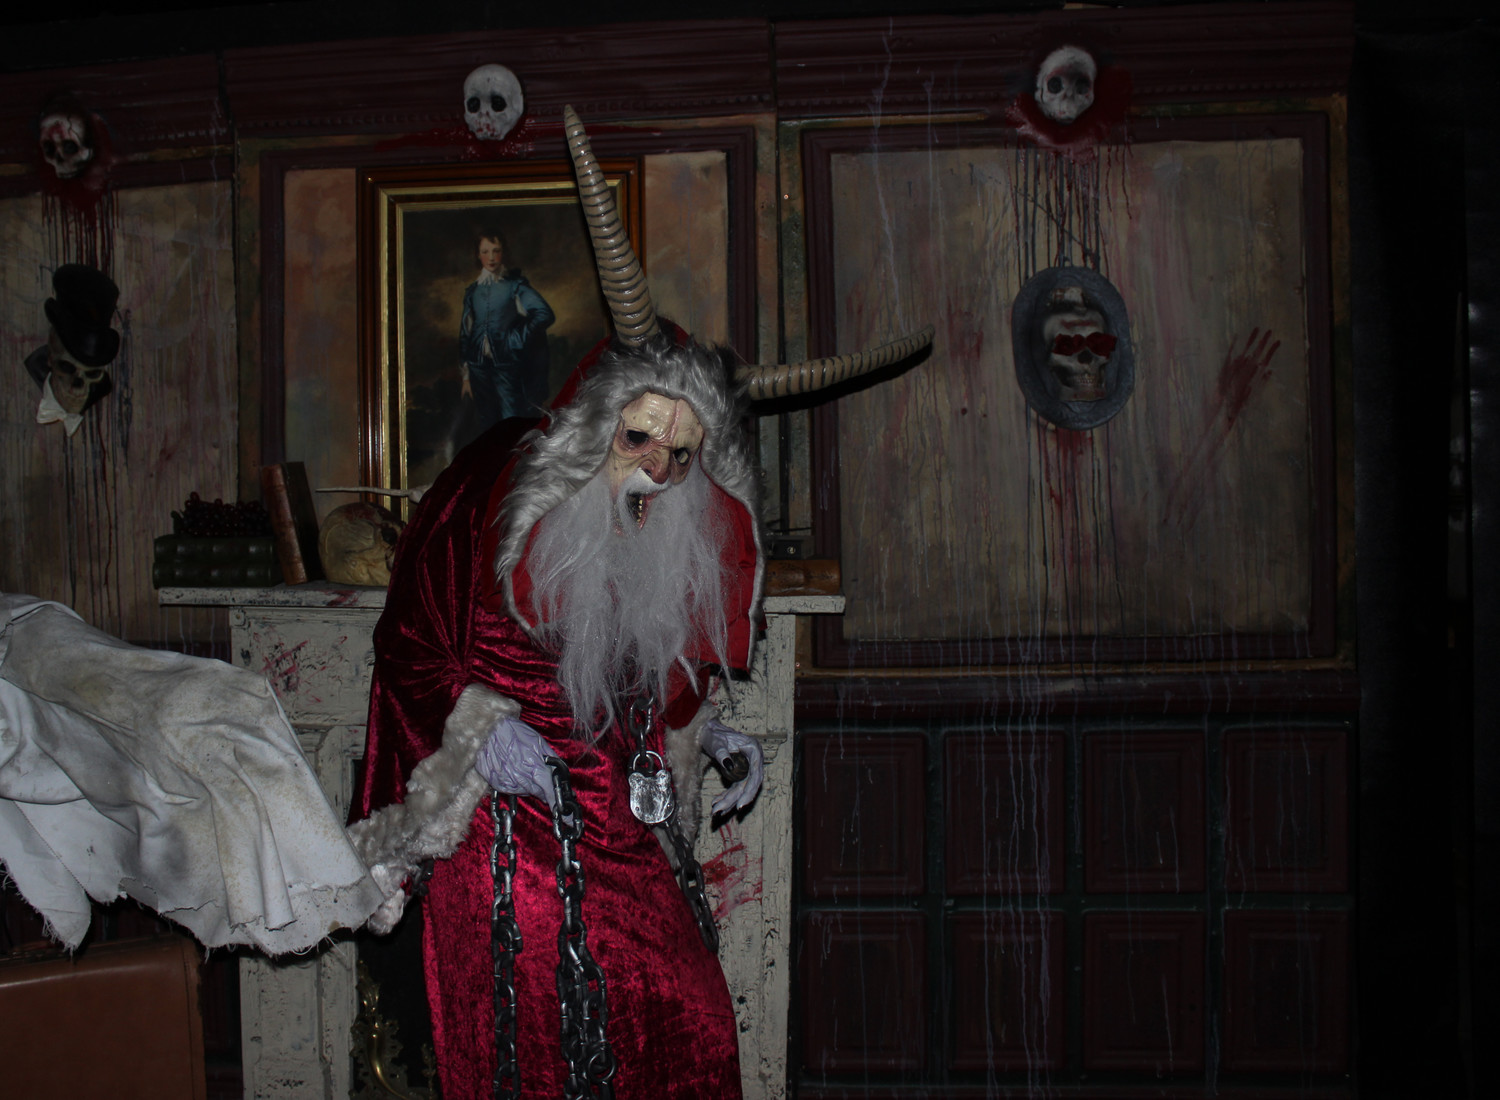 Some of Blood Manor's ghouls are inspired by ancient beasts like the Germanic demon Krampus.